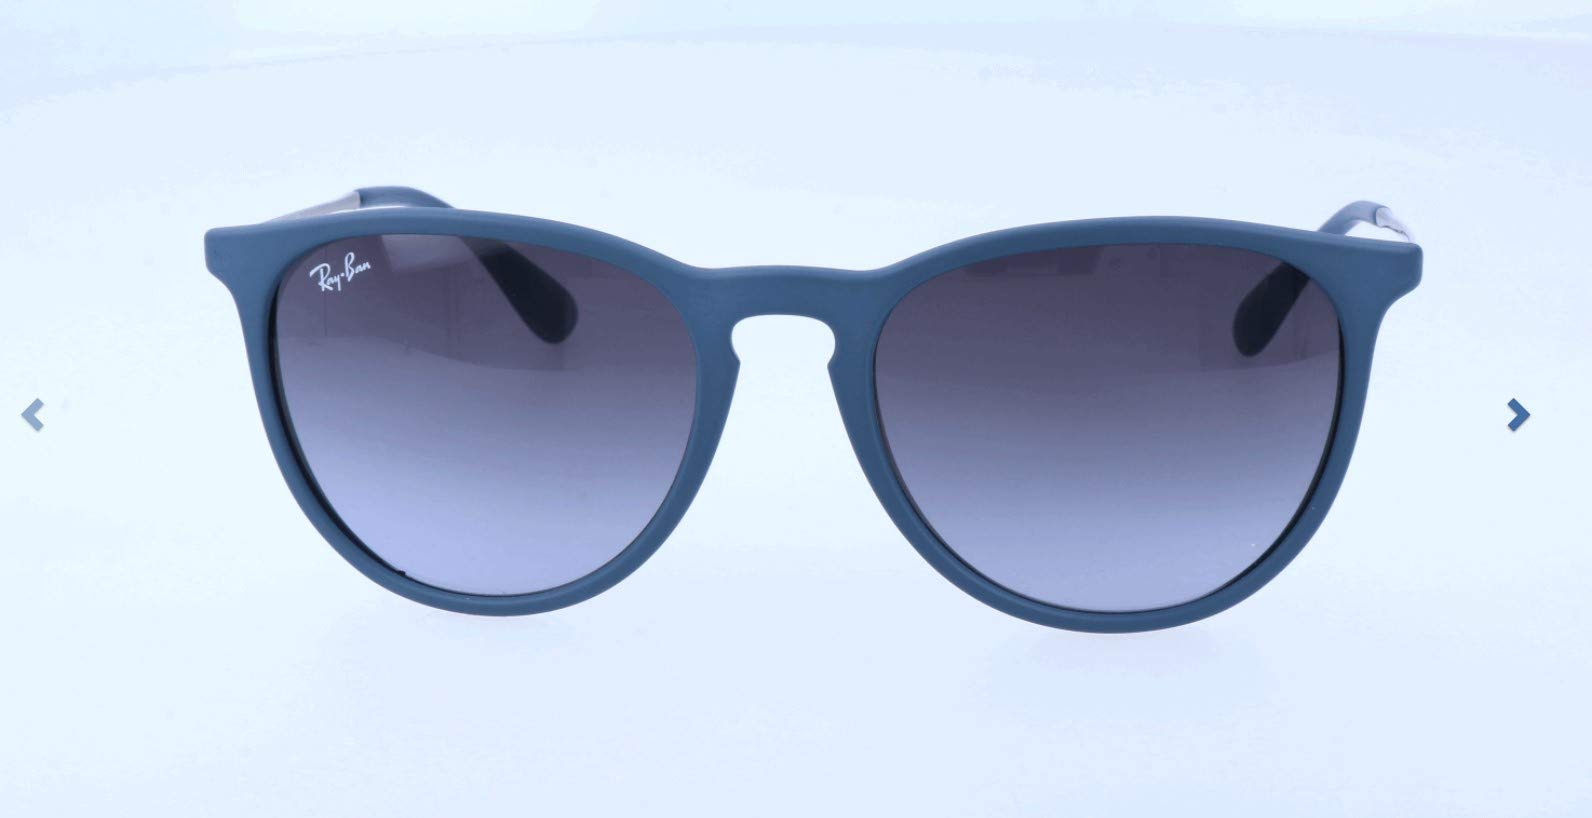 RAY-BAN RB4171 Erika Round Sunglasses, Rubber Blue/Grey Gradient, Grey Gradient by RAY-BAN